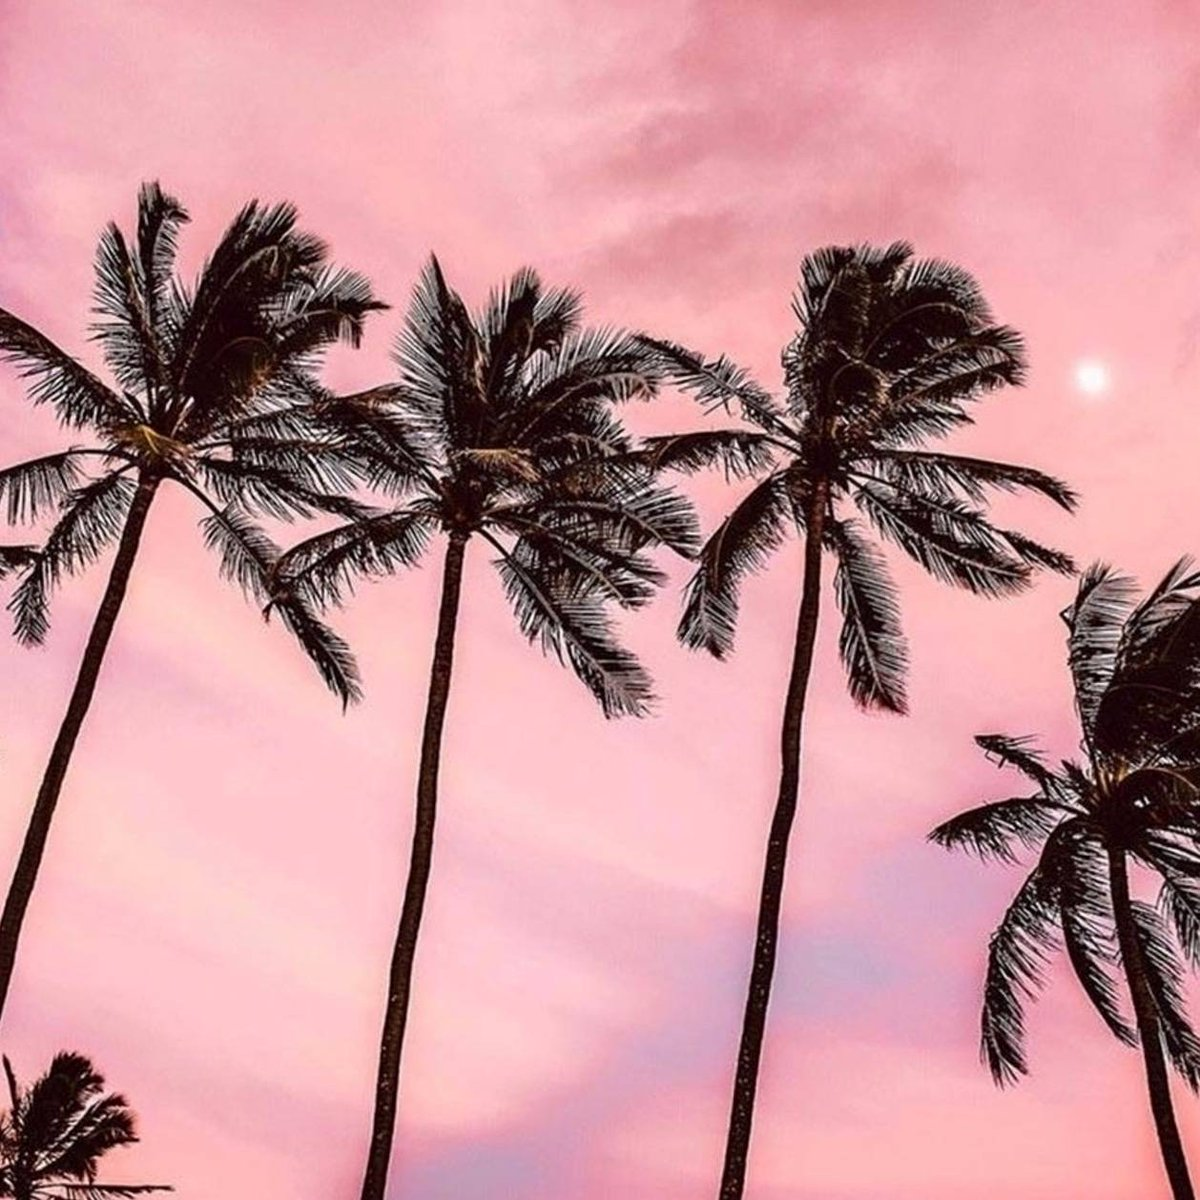 Image for HOLIDAY DREAMIN' 🌴😍💖💕 #holiday #bff https://t.co/mCVymS3dHb